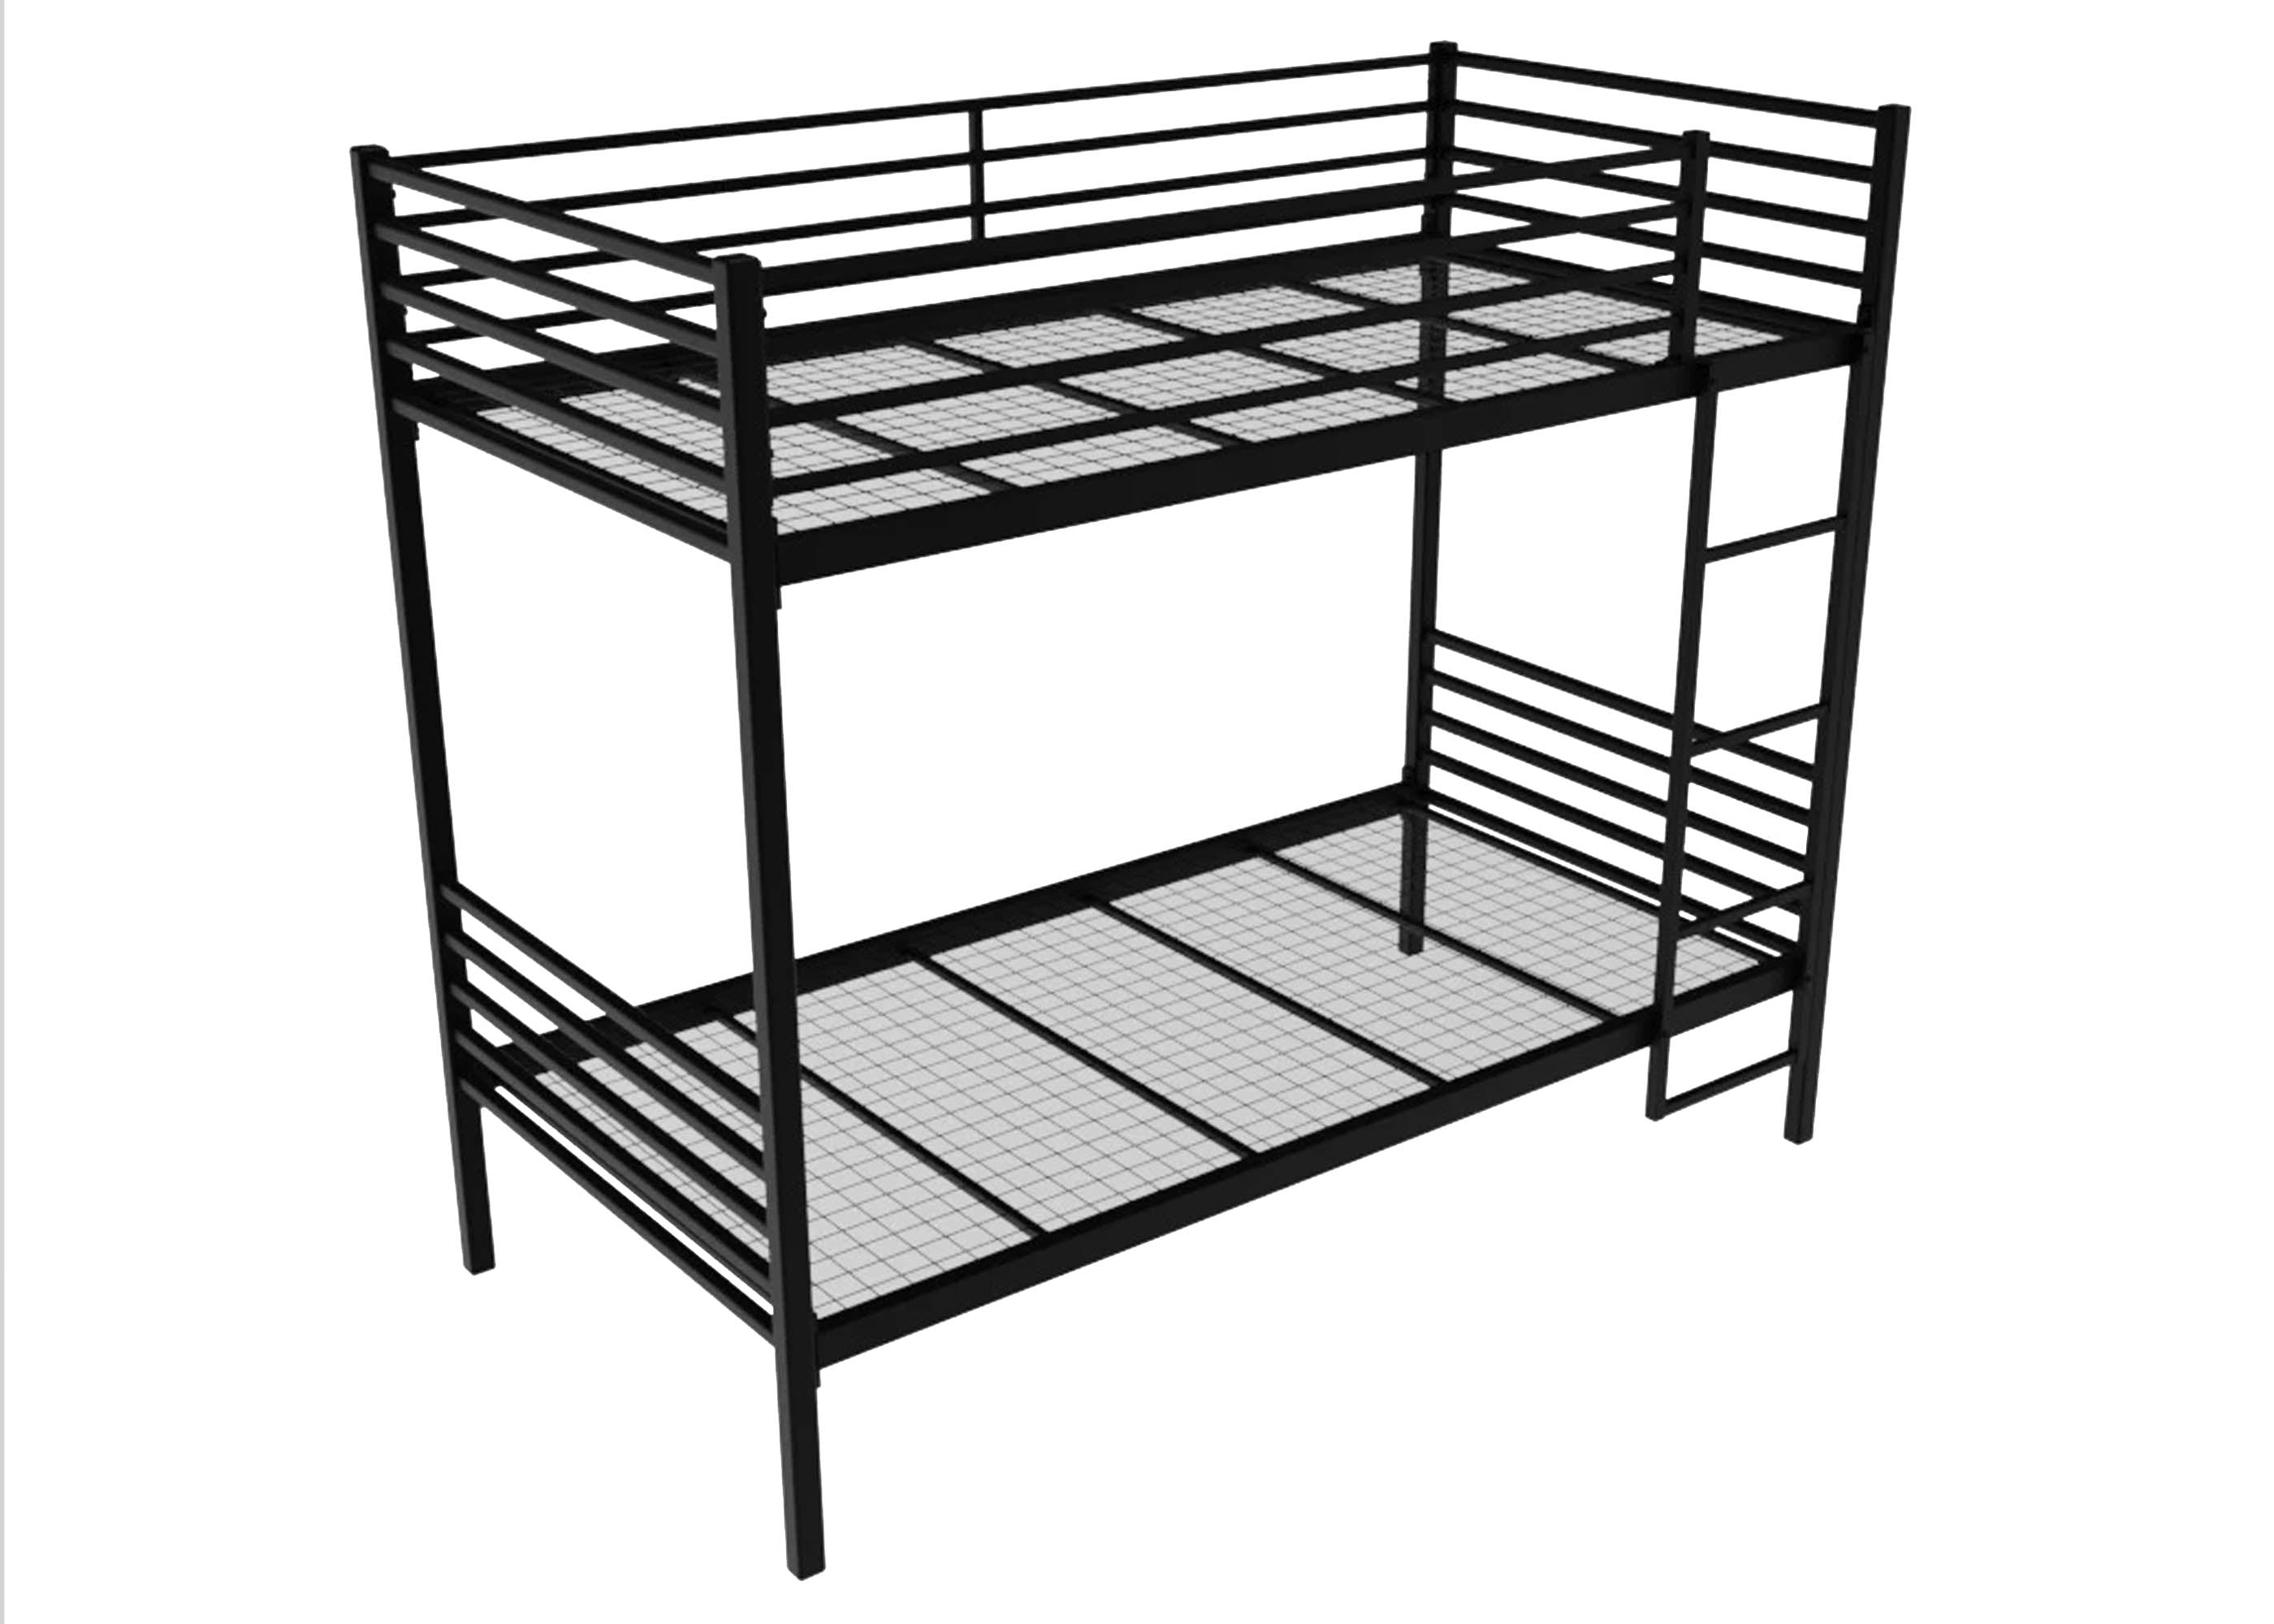 Picture of: Heavy Duty Bunk Bed Lifetime Guarantee Reinforced Beds